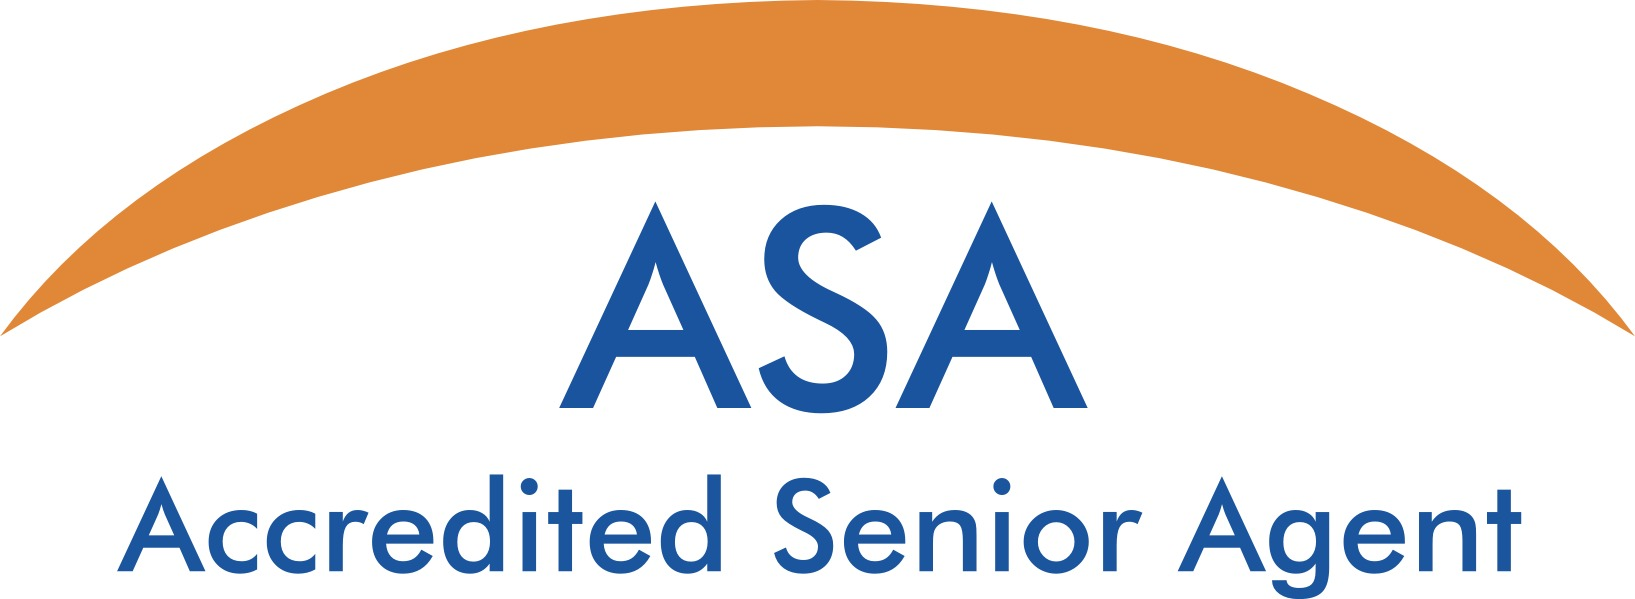 Accredited Senior Agent